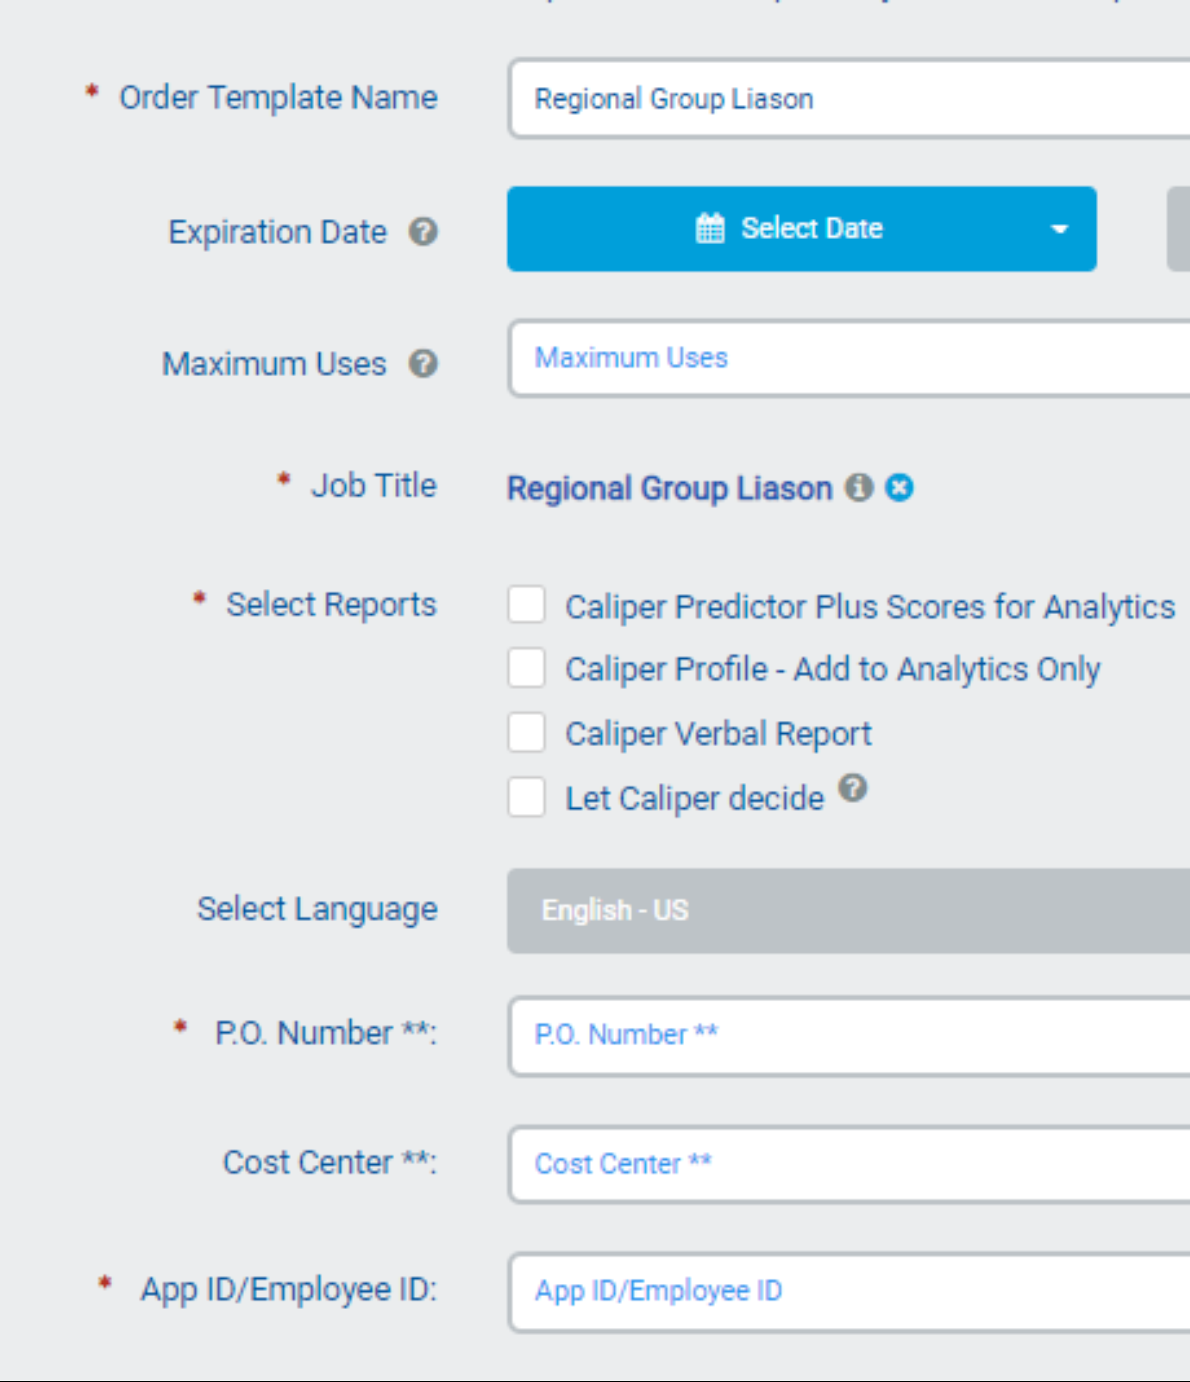 Added Required fields